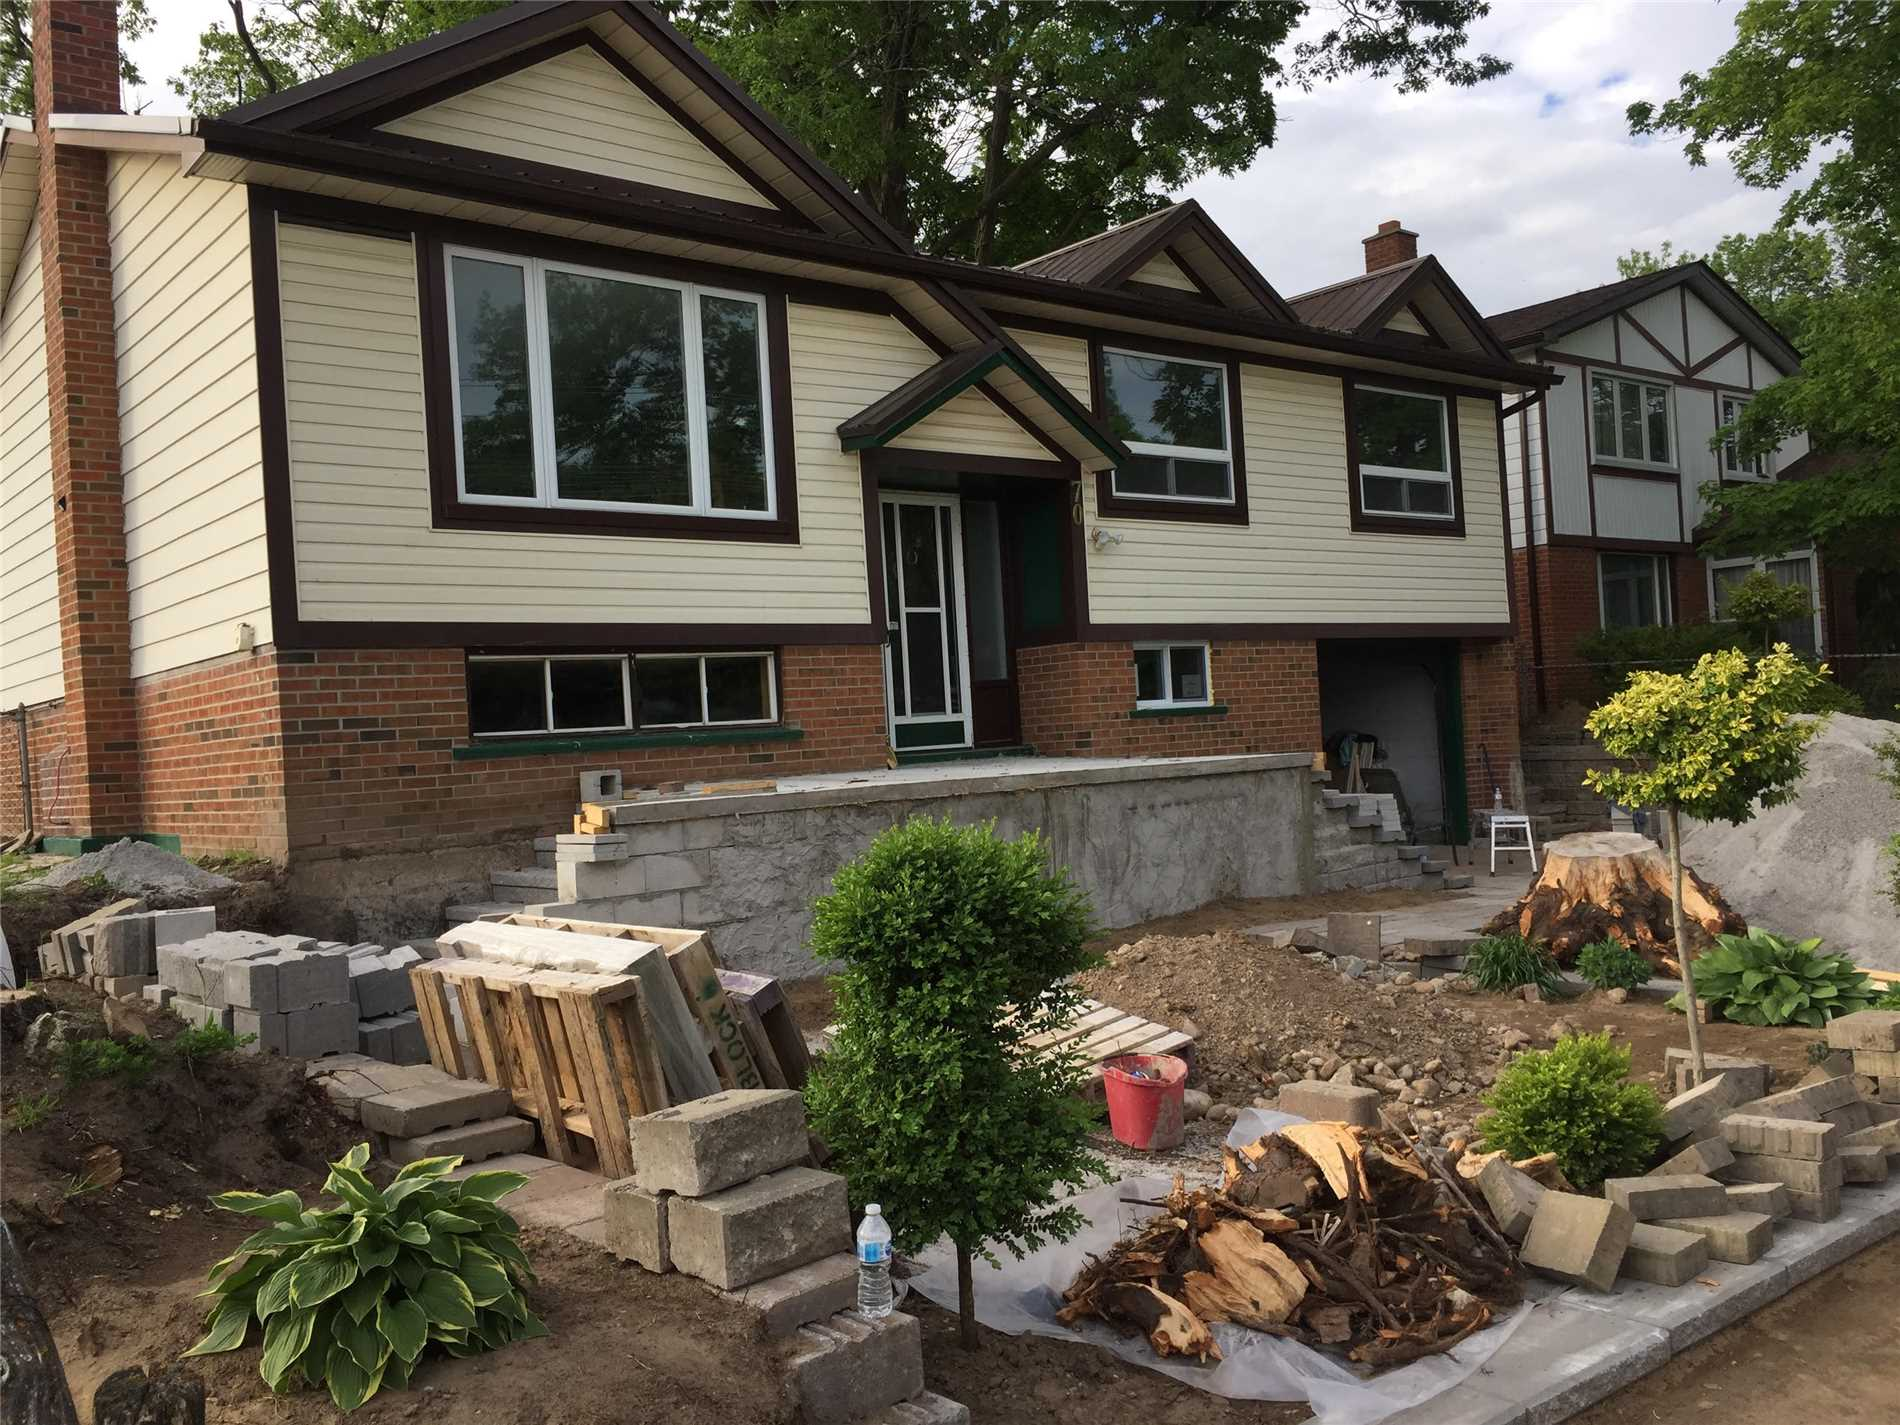 Property Is Currently Undergoing A Complete Renovation And Will Be Ready For Occupancy August 1, 2019. Large In Town Lot Sits This Completely Renovated Raised Bungalow Only Steps From Barrie's Golden Mile, University, Hospitals And Hwy 400. Large Spacious 3 Bedroom With Walkout To Beautiful Deck And Back Yard. The Lower Level Consists Of A 1 Bedroom In Law Suite With Its Own Separate Entrance. Property Comes With All New Appliances, New Floors, New Panel Box,